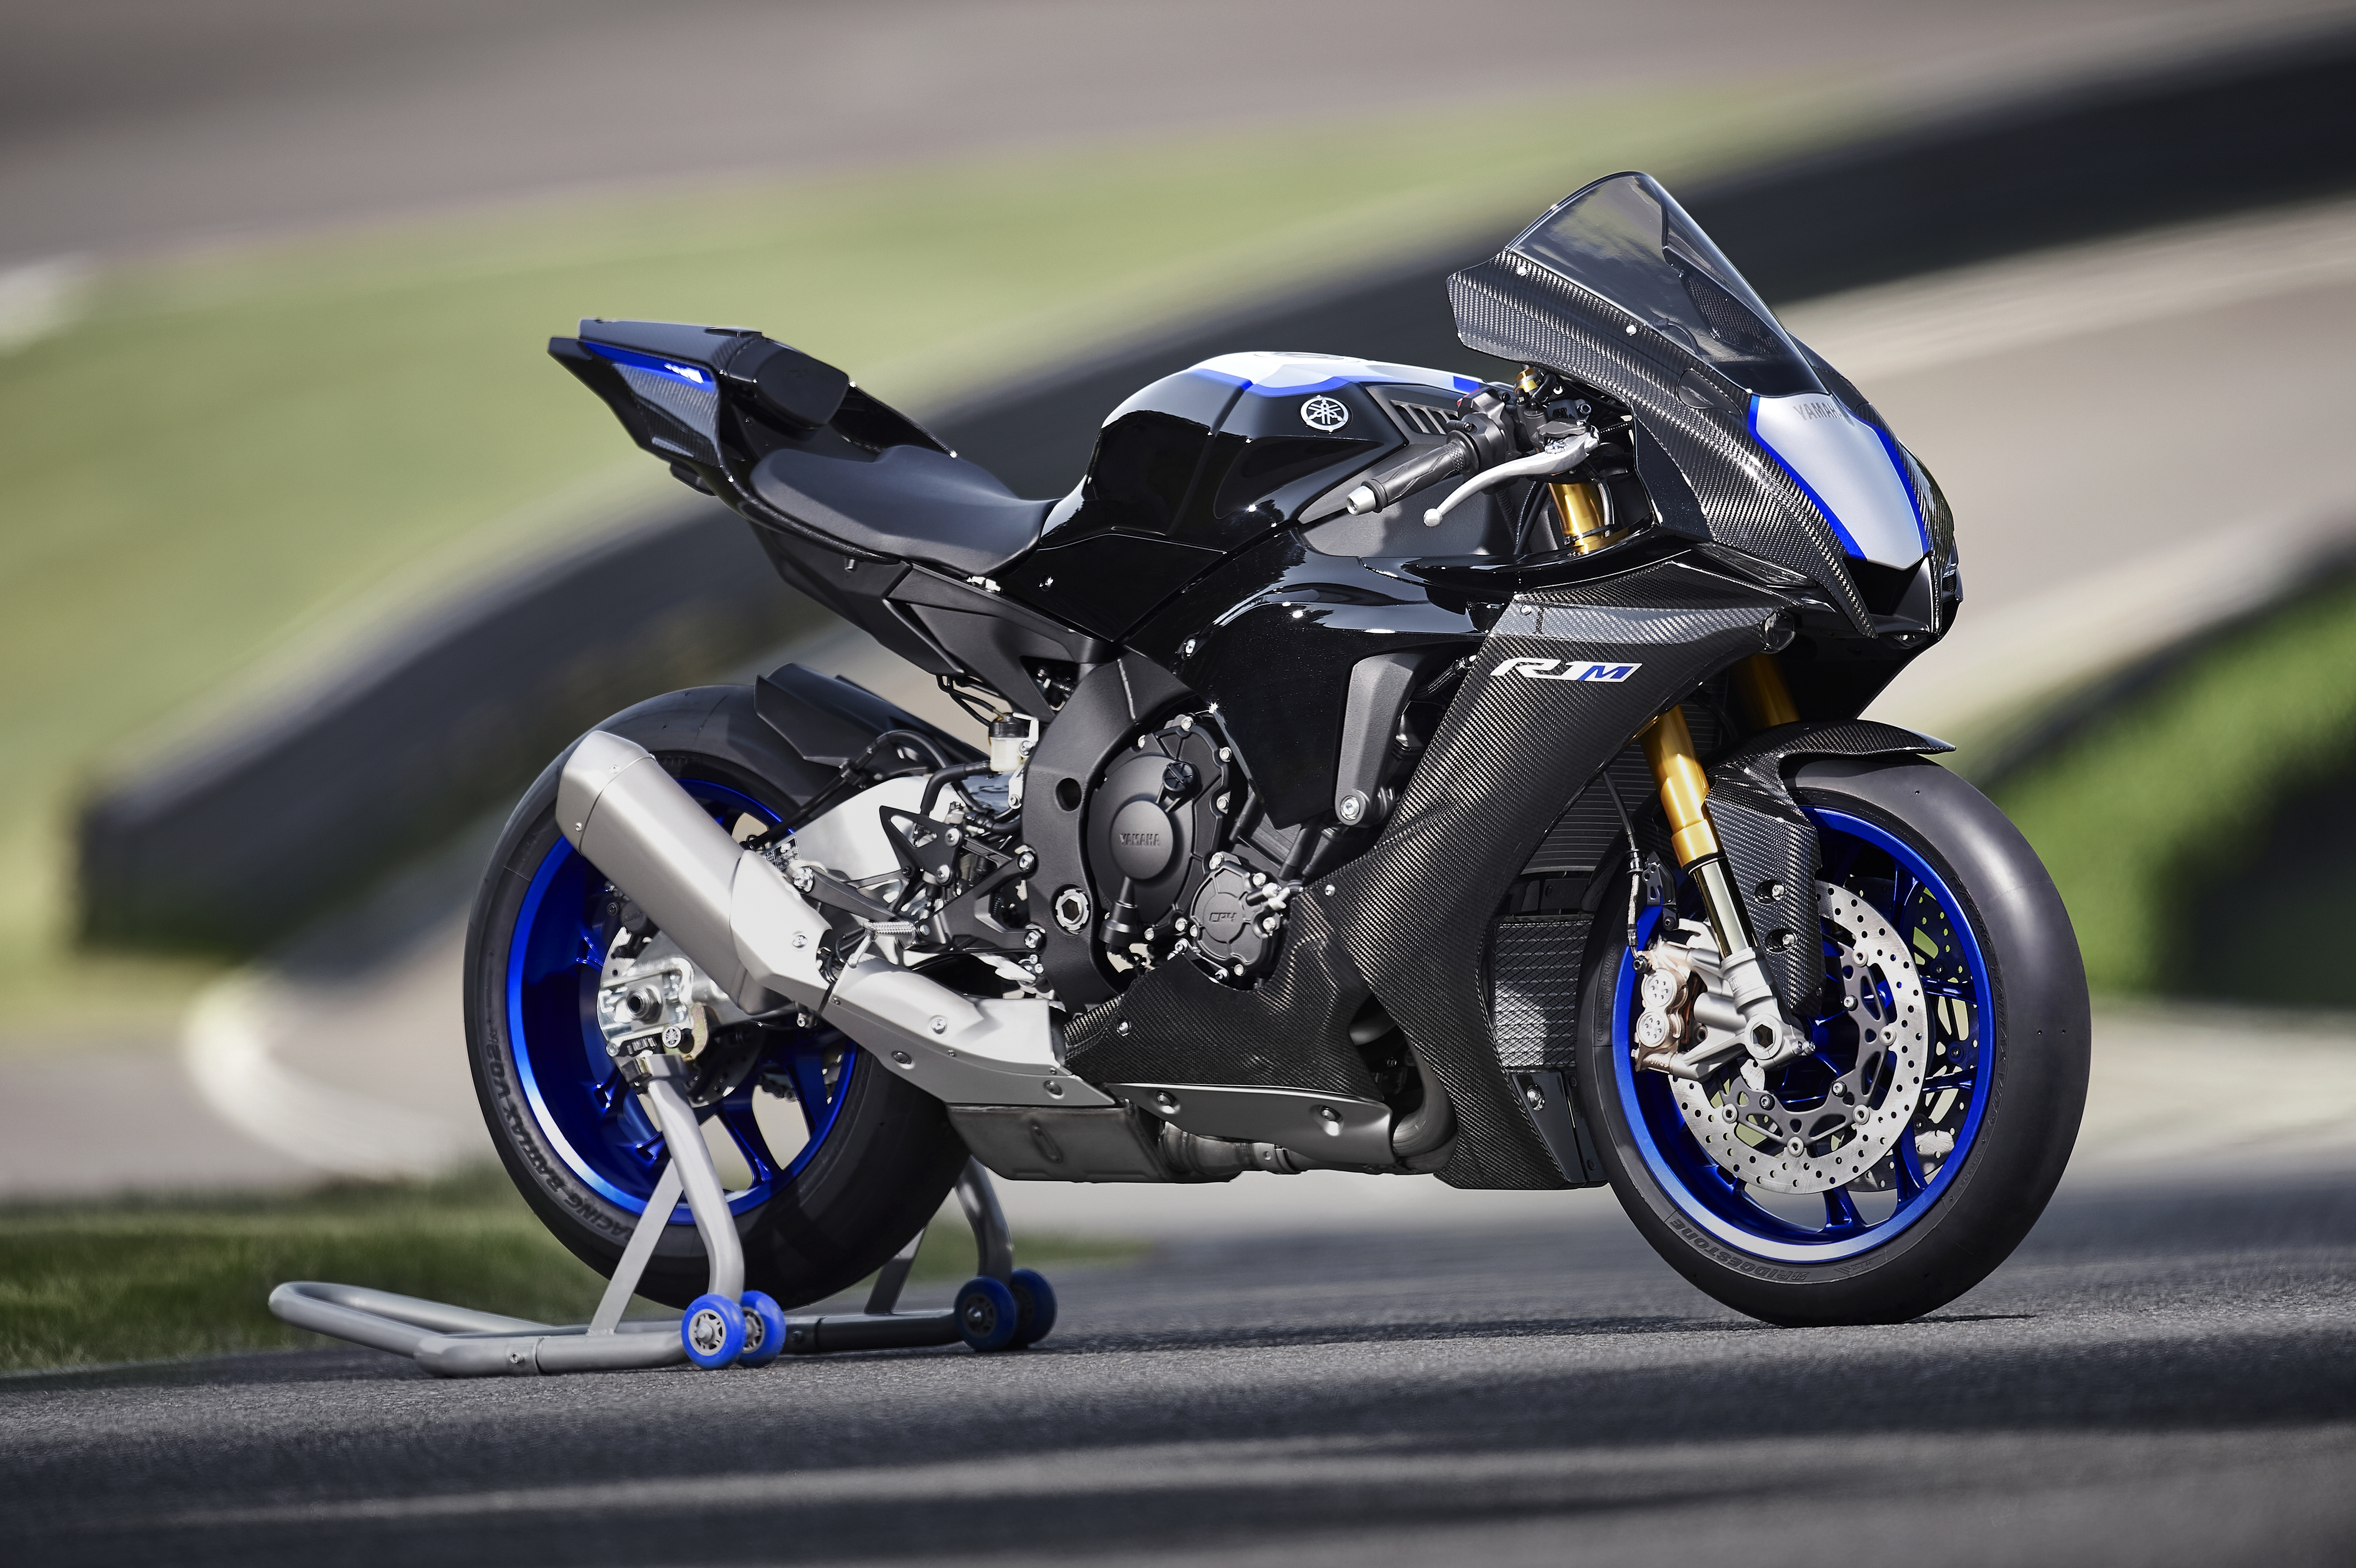 2020 Yamaha R1 And R1m O A Superbike For The Masses Visordown